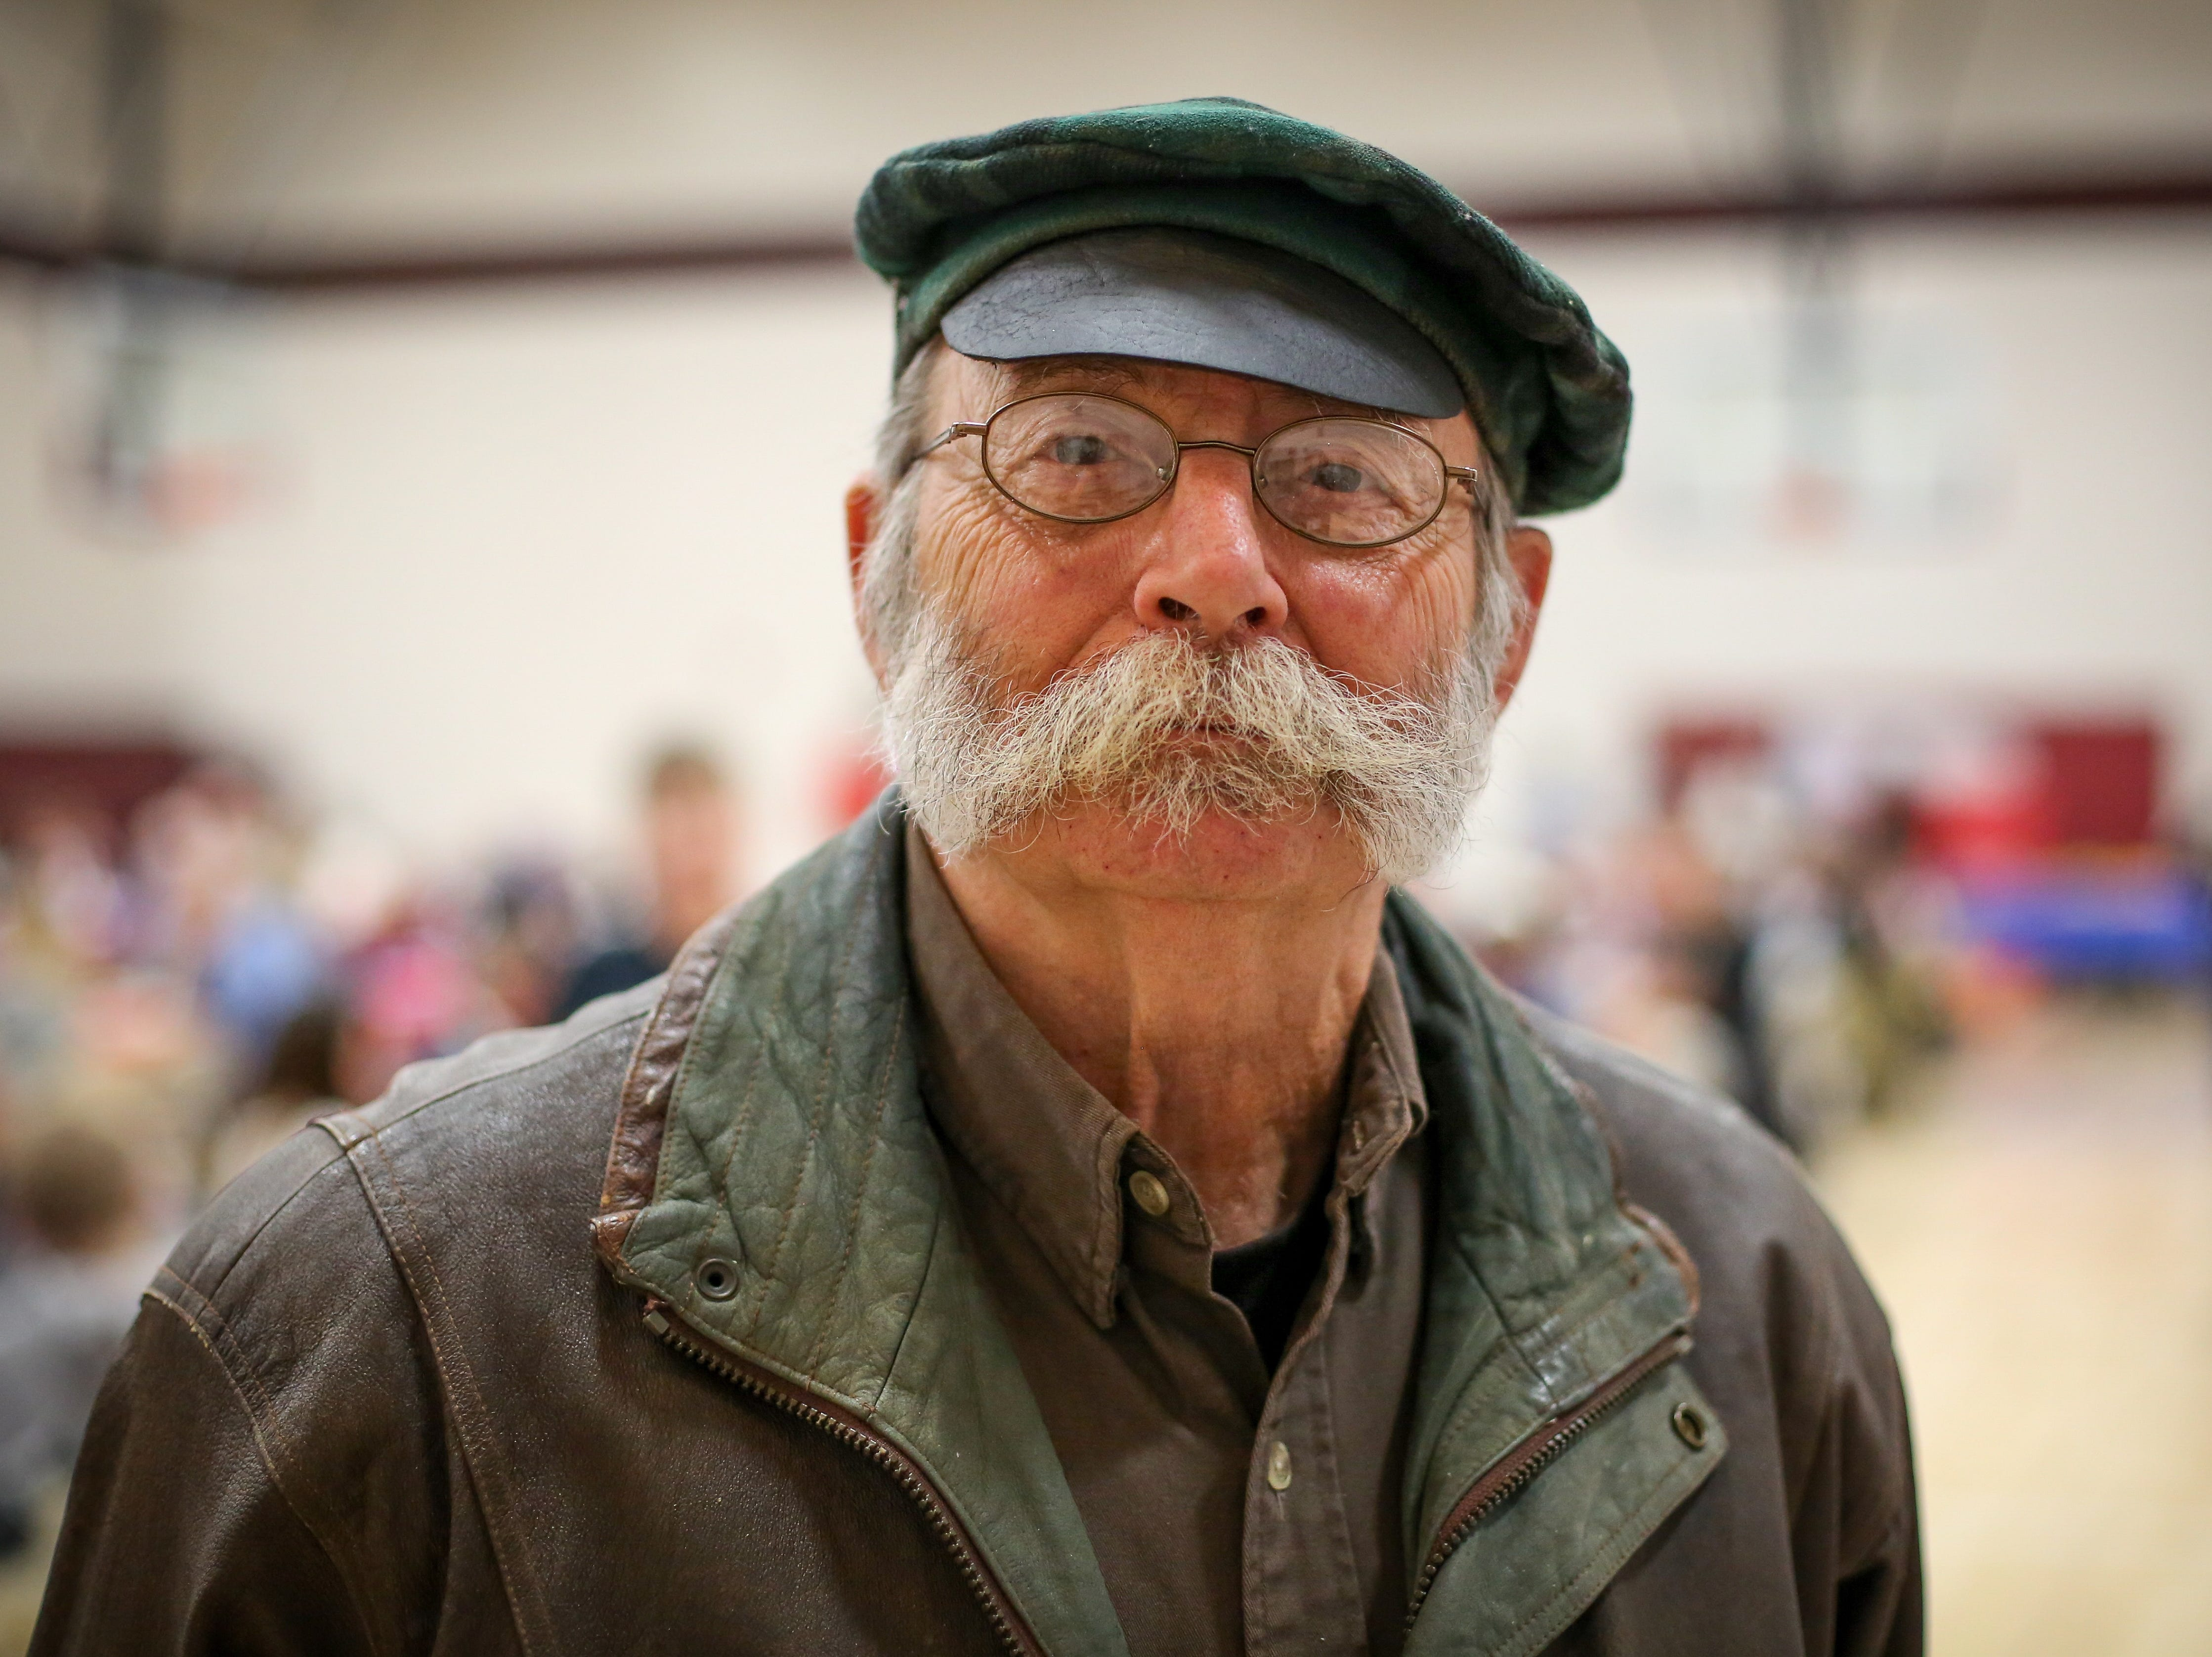 Roger Shannon, an Army veteran, shows off his mustache during Veterans Day Breakfast at Northview Middle School on Wednesday, Nov. 14, 2018 in Ankeny, Iowa.